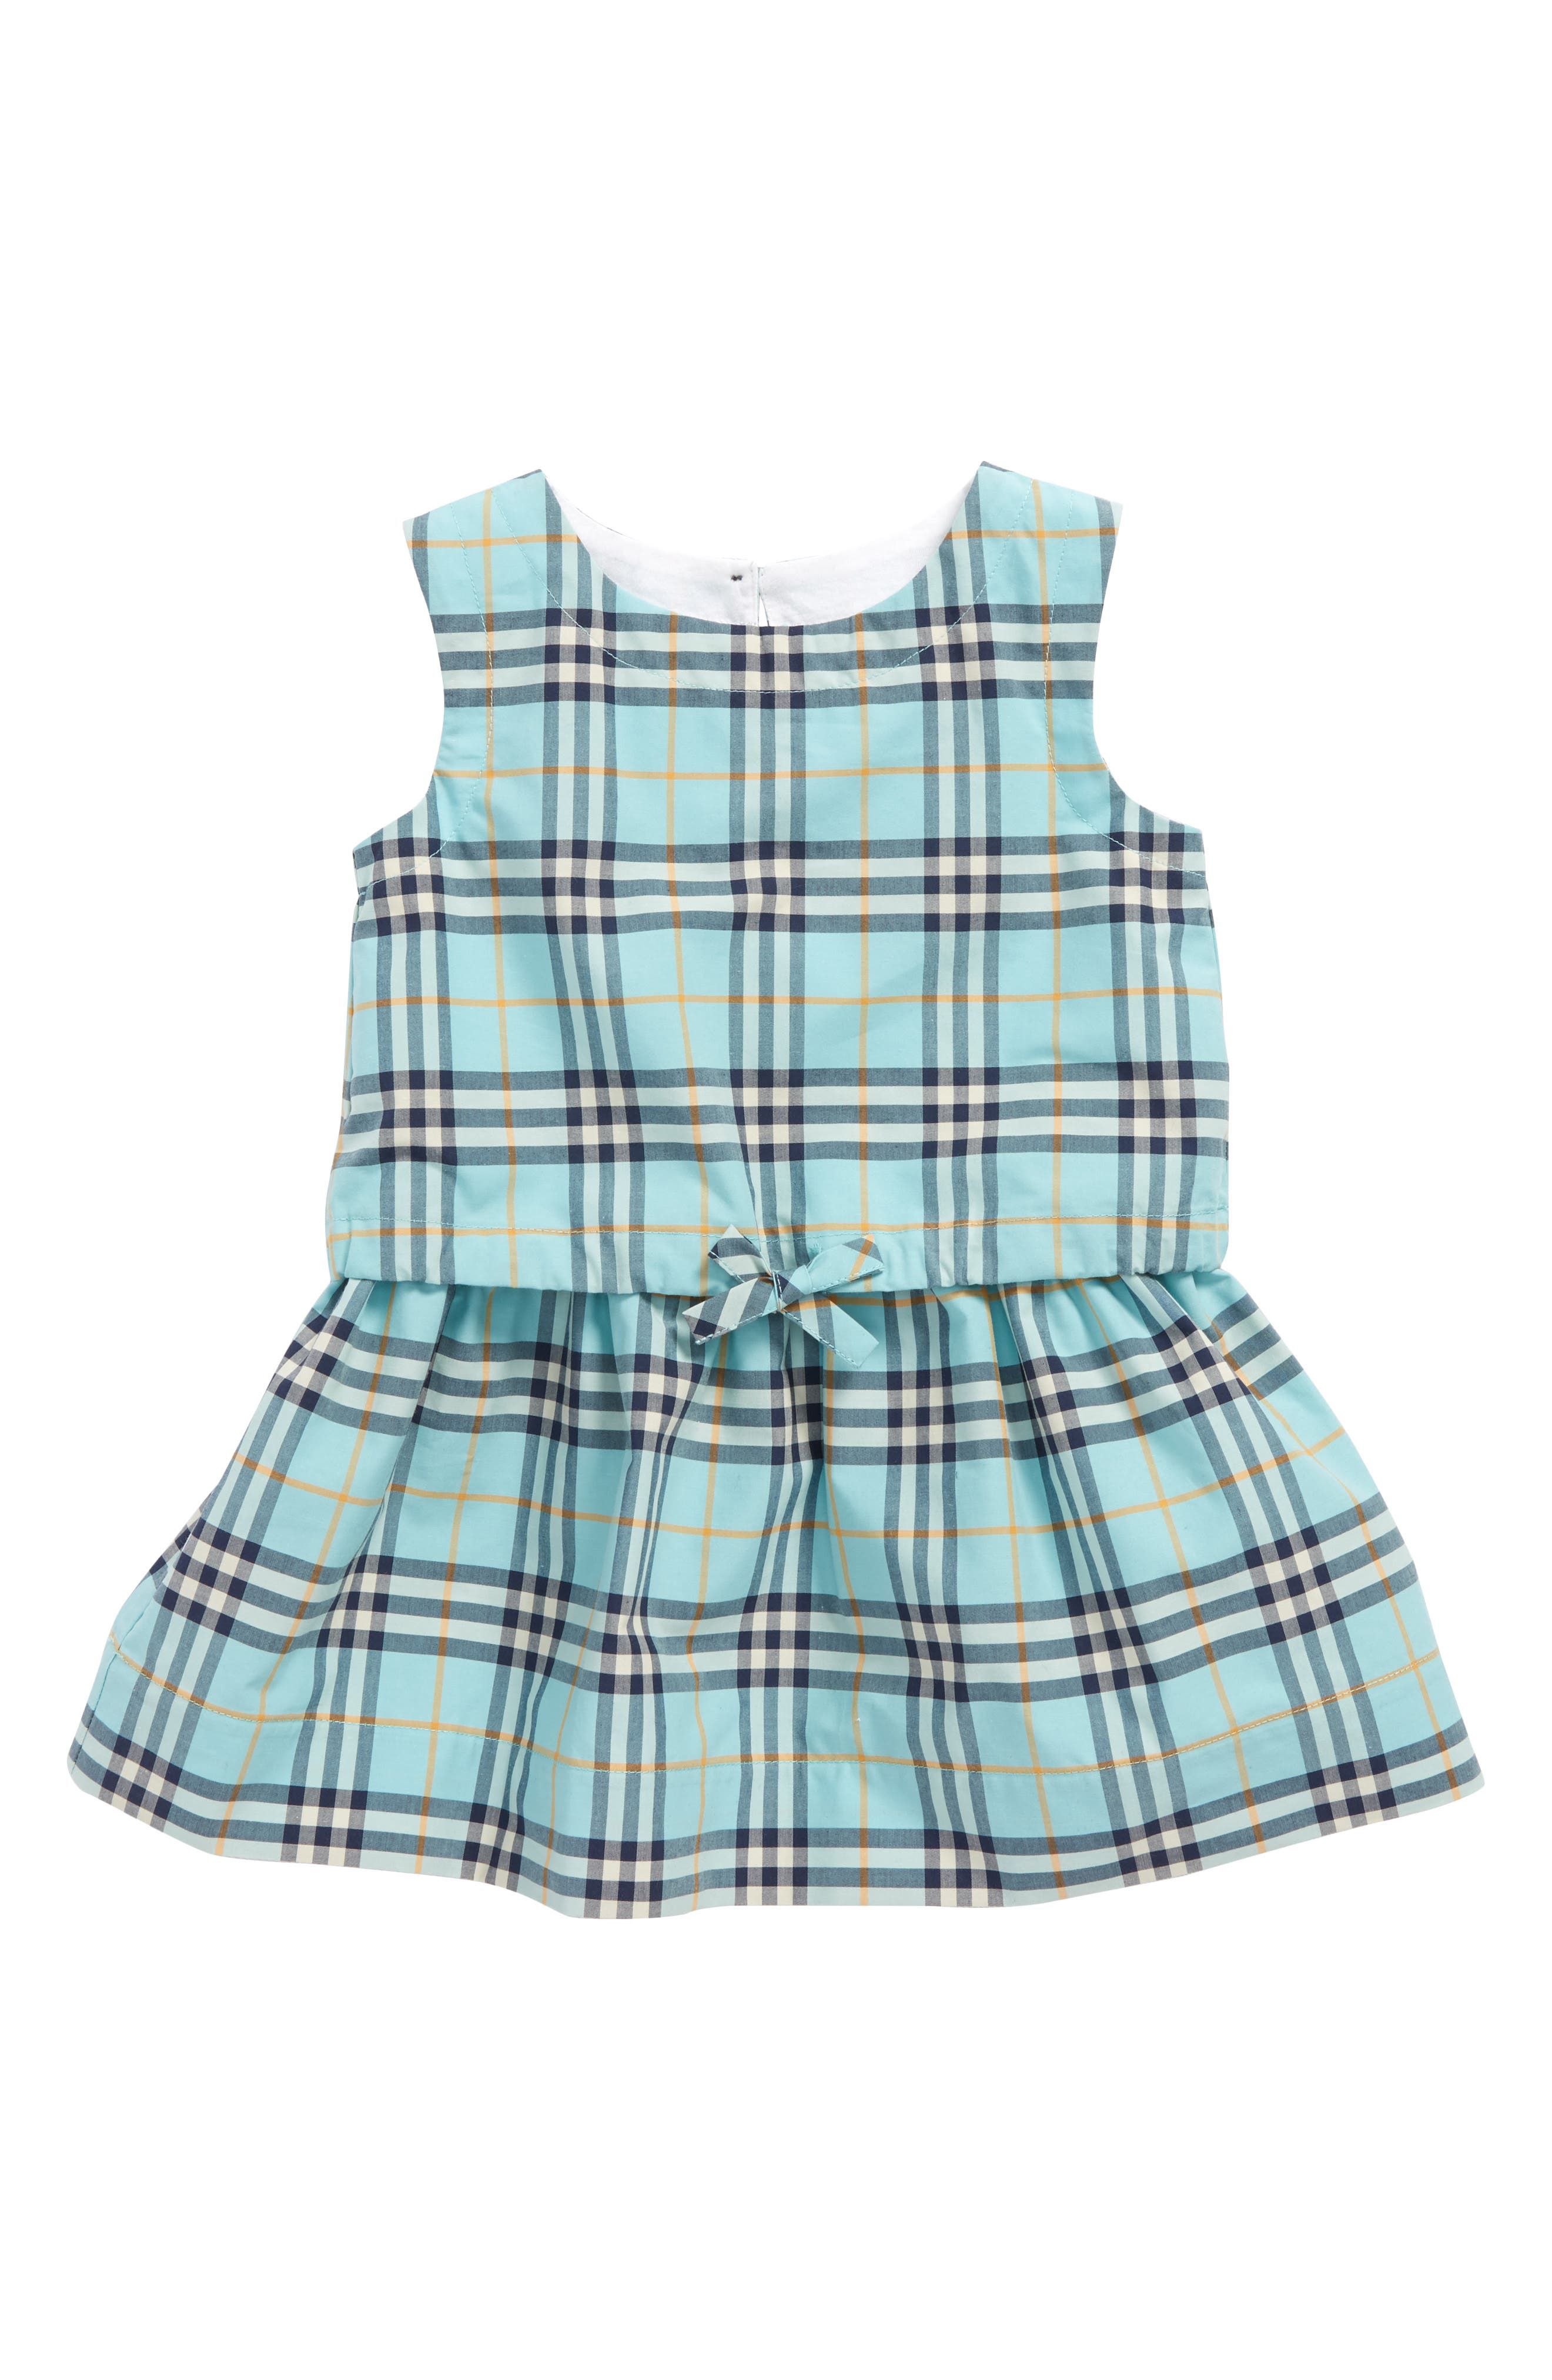 Mabel Check Dress,                             Main thumbnail 1, color,                             449